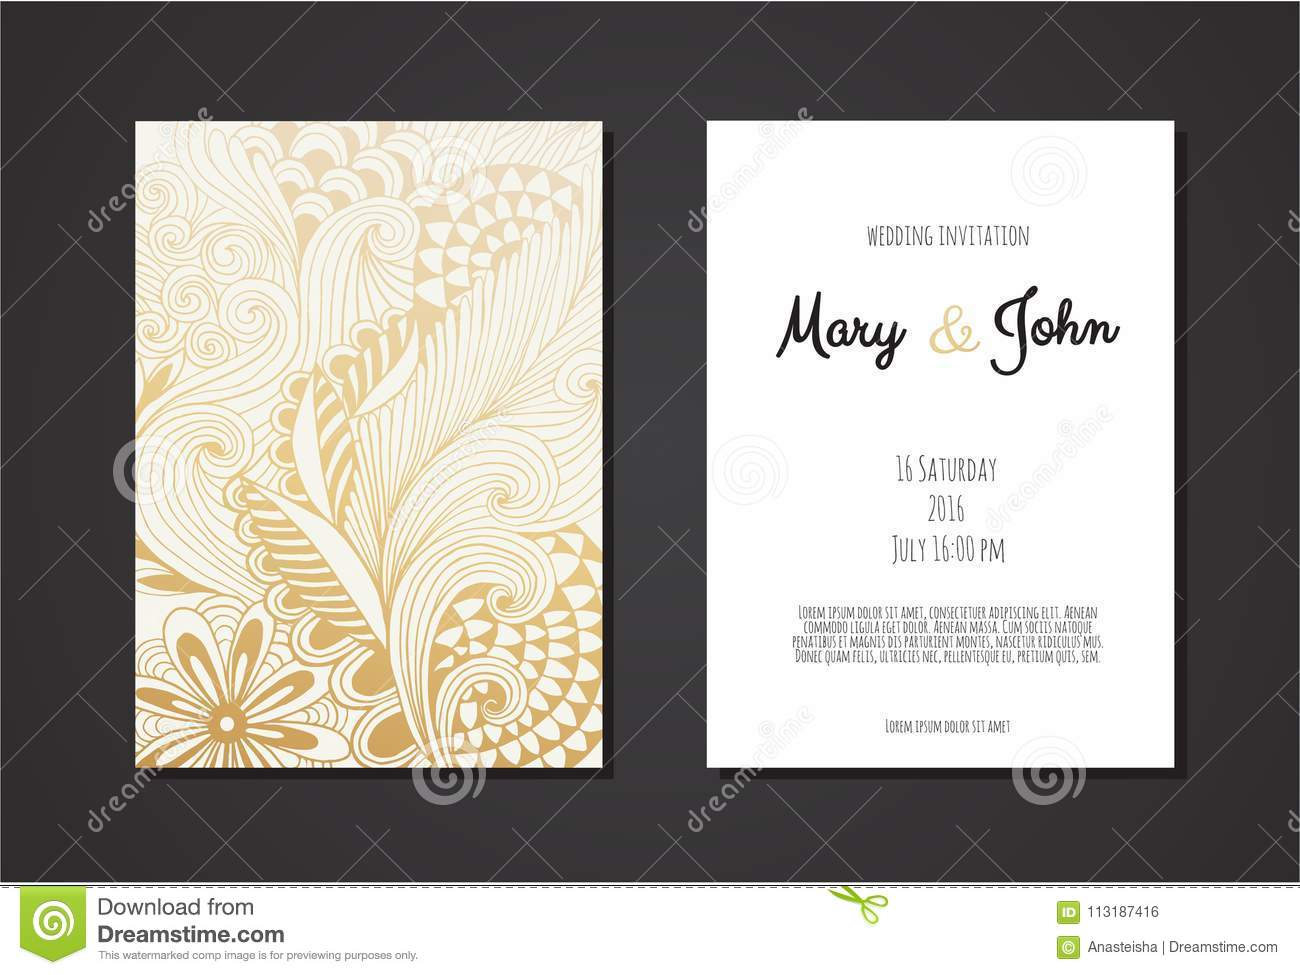 Vintage Wedding Invitation Templates Cover Design With Gold Leaves